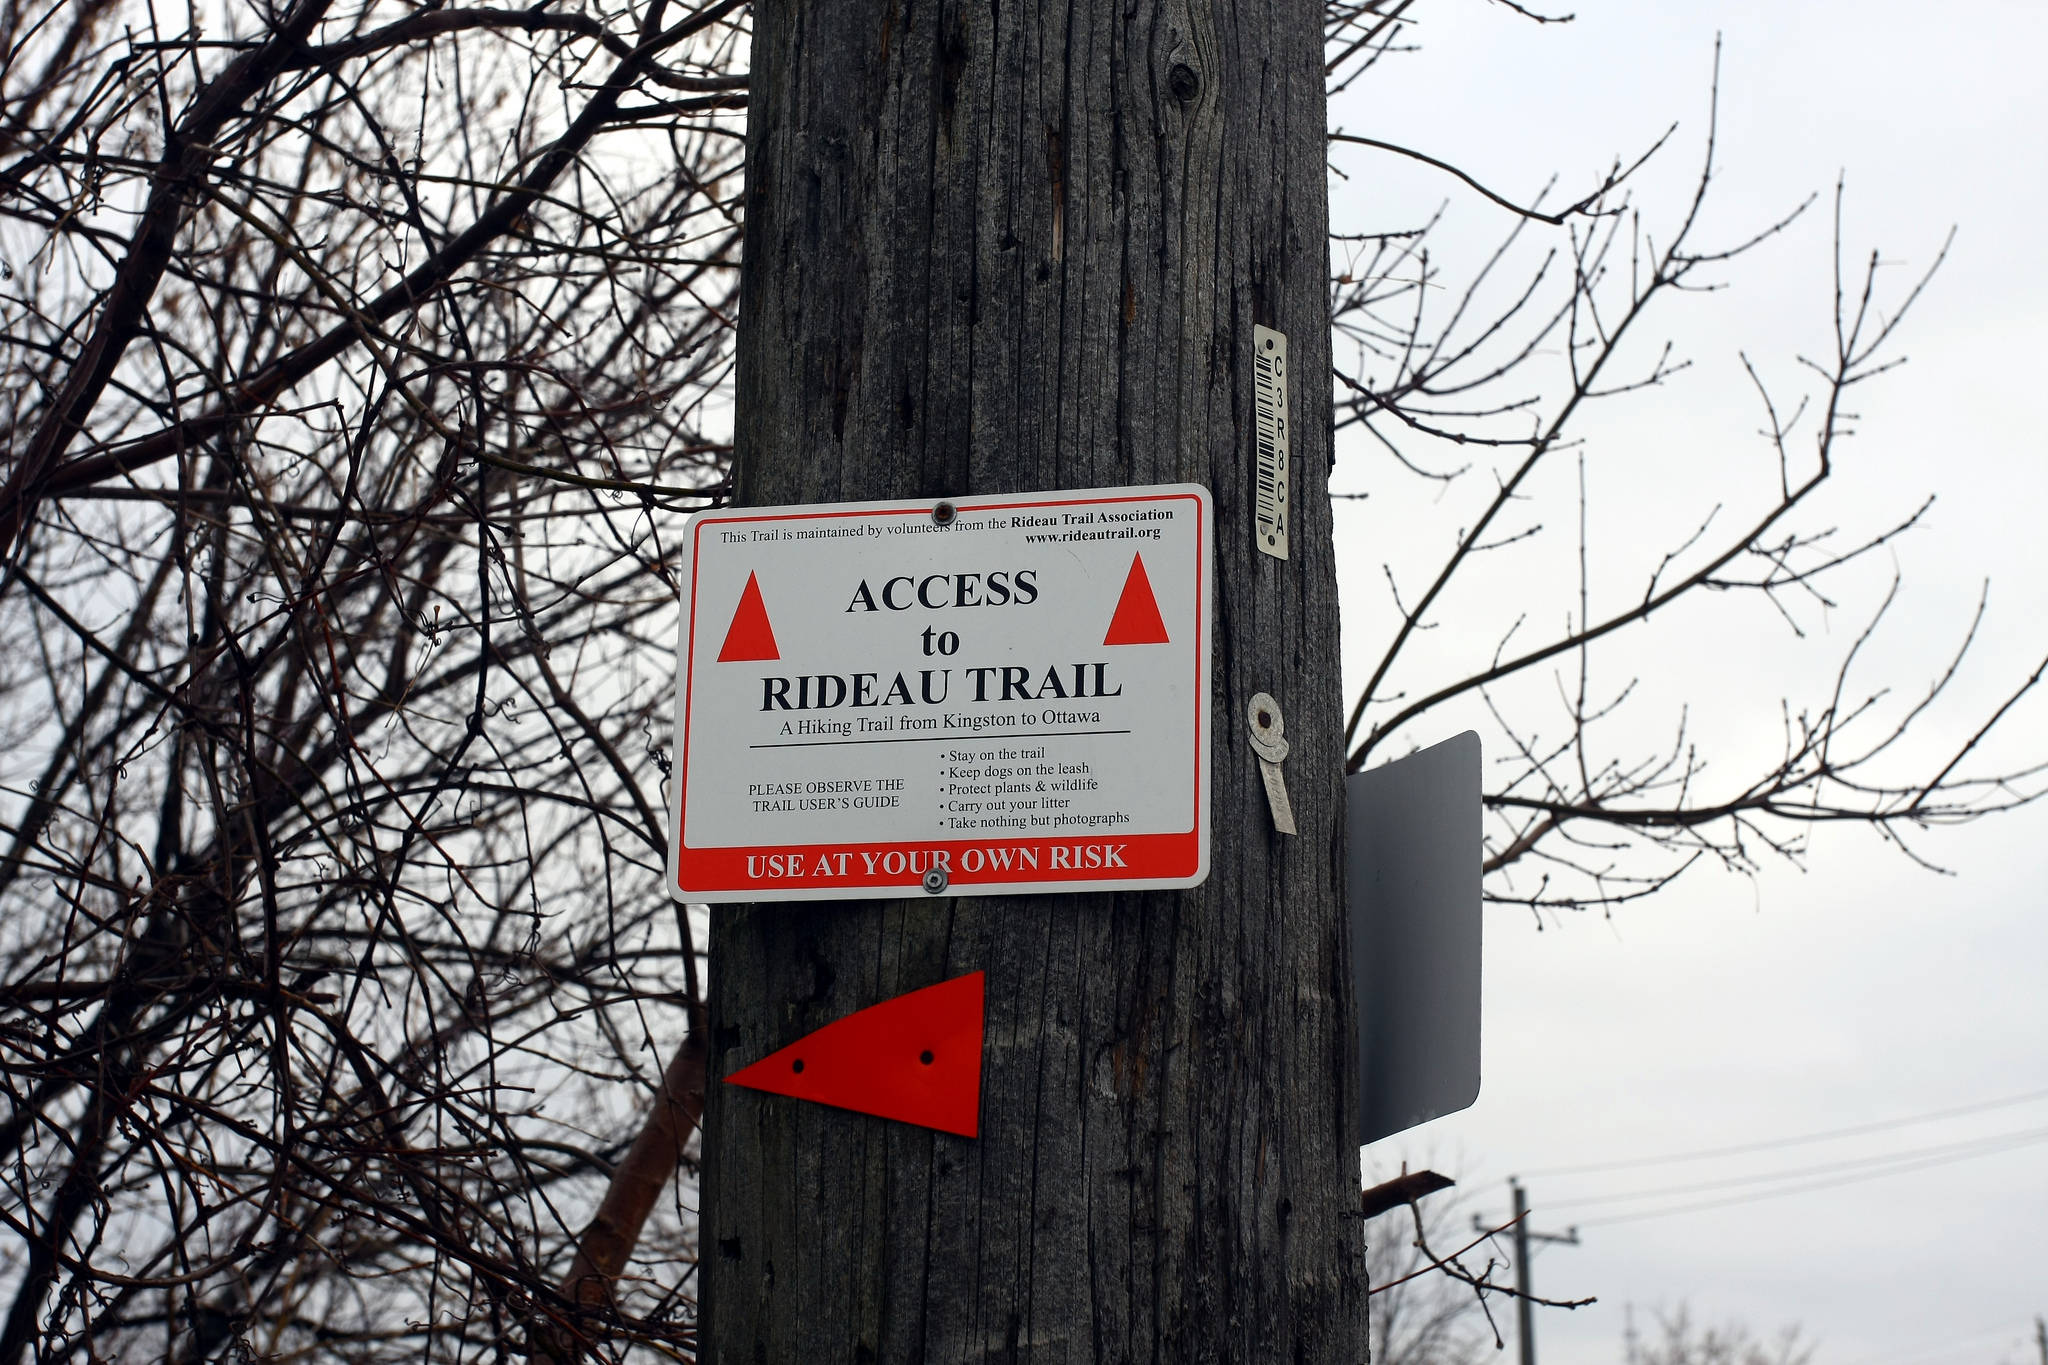 Orange triangles are used to mark the main Rideau Trail (to distinguish the two directions, Kingston-bound trail markers carry yellow tips). (photo: Martin Cathrae via Flickr Creative Commons)